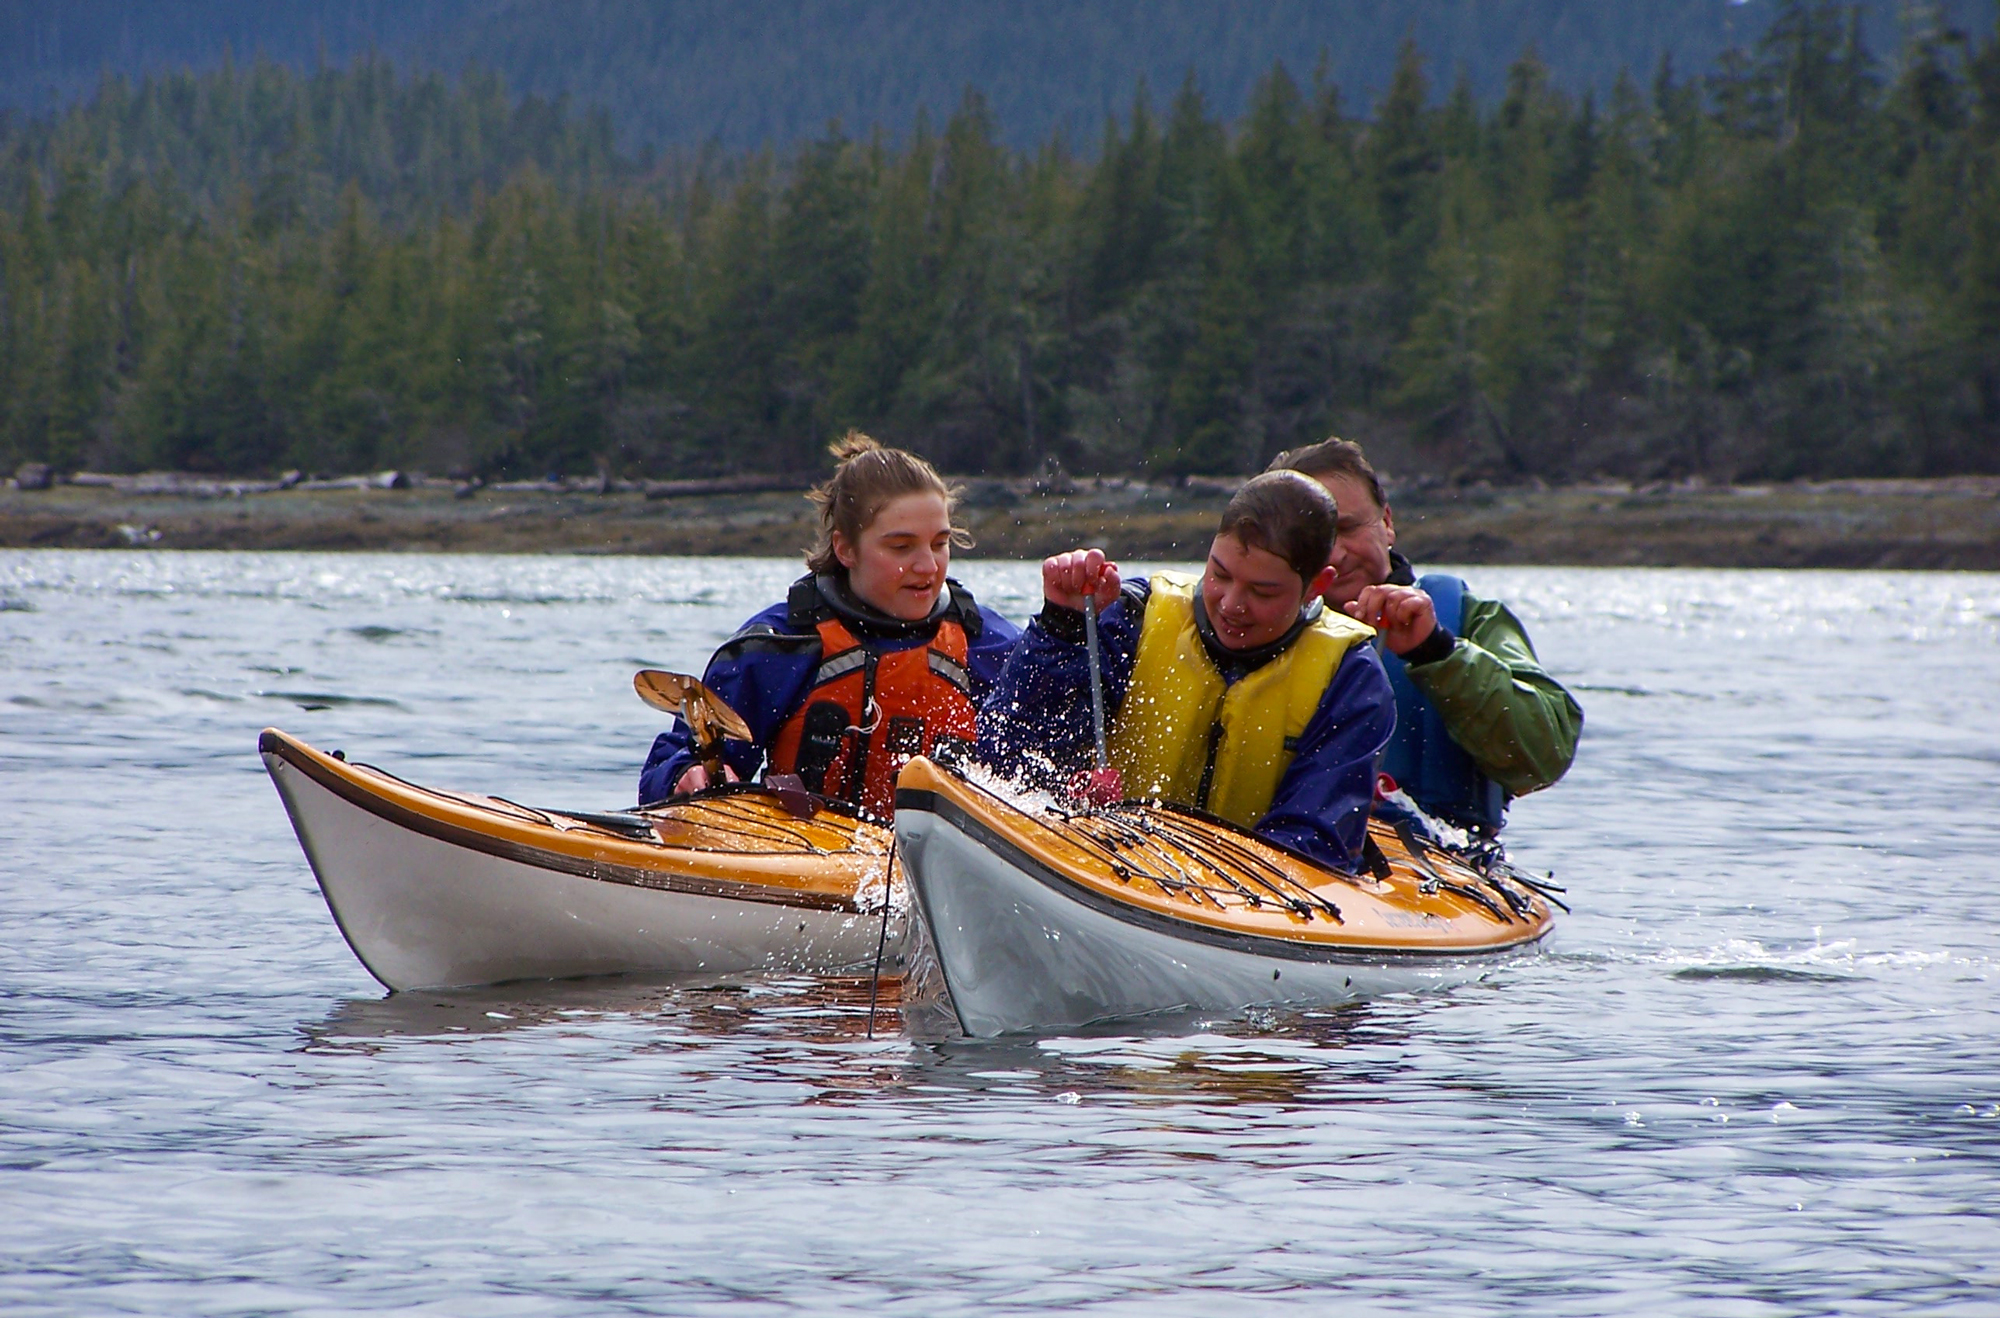 In the unlikely event that your kayak capsizes, our guides are trained to get you quickly back in!